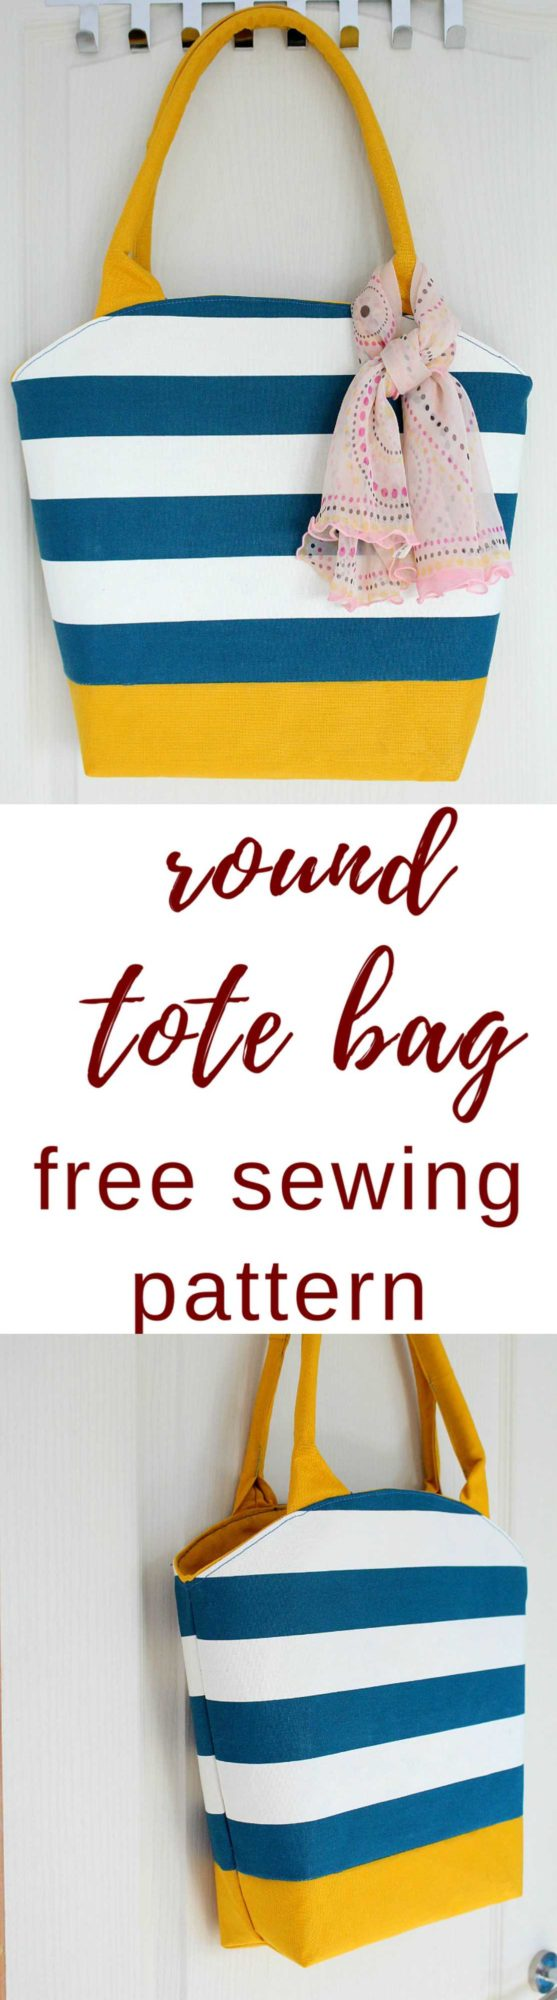 Round tote bag pattern